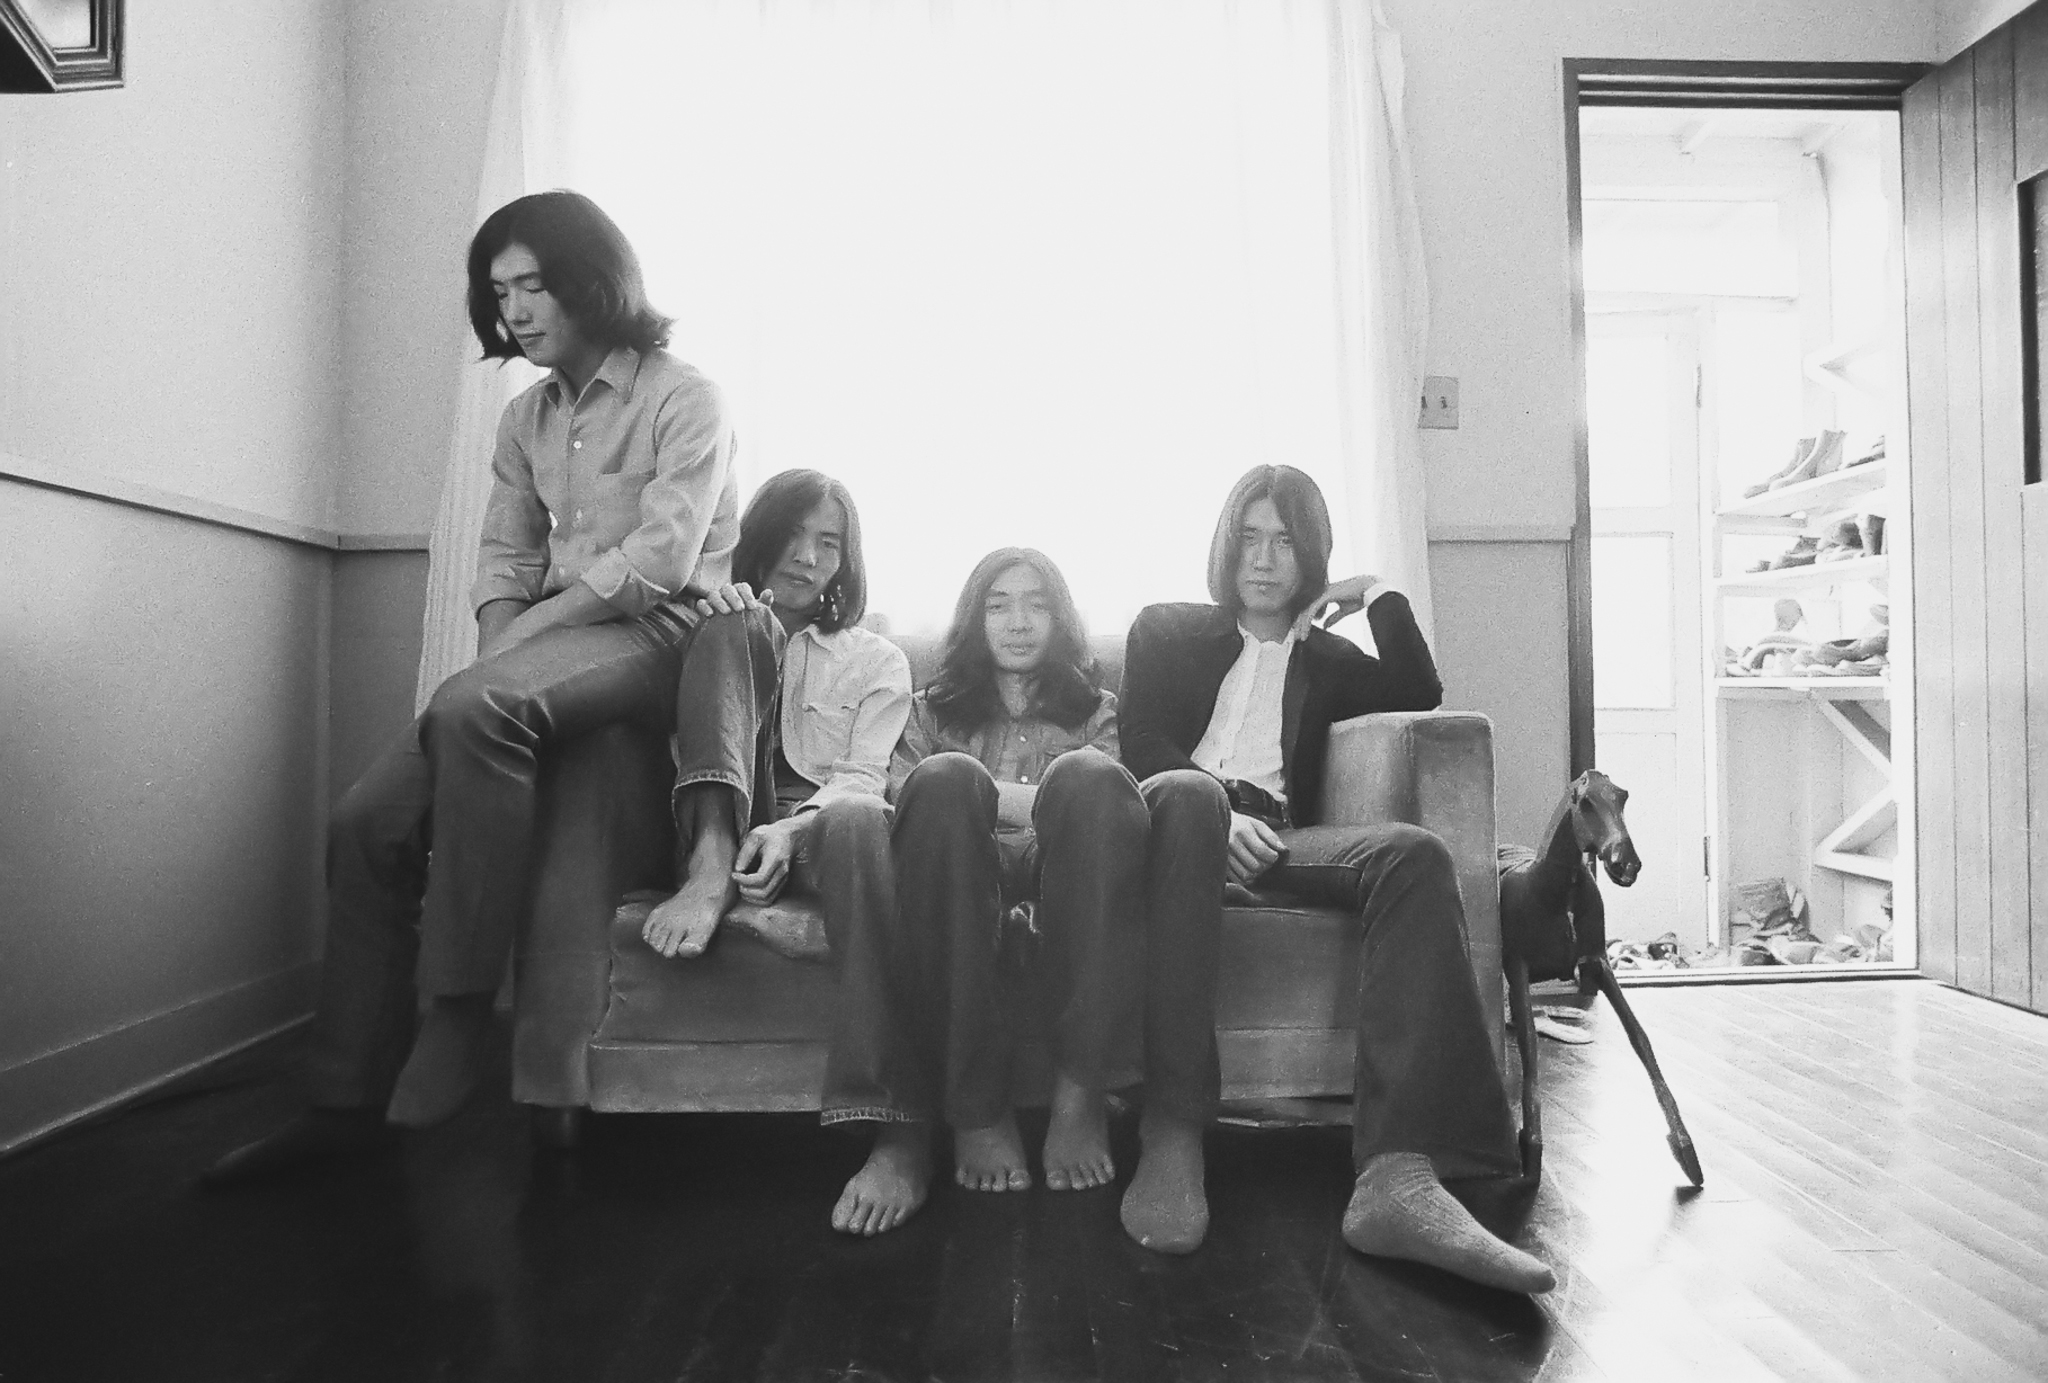 Early days: Japanese rock group Happy End takes a break during an album photo shoot in 1971.   © MIKE NOGAMI